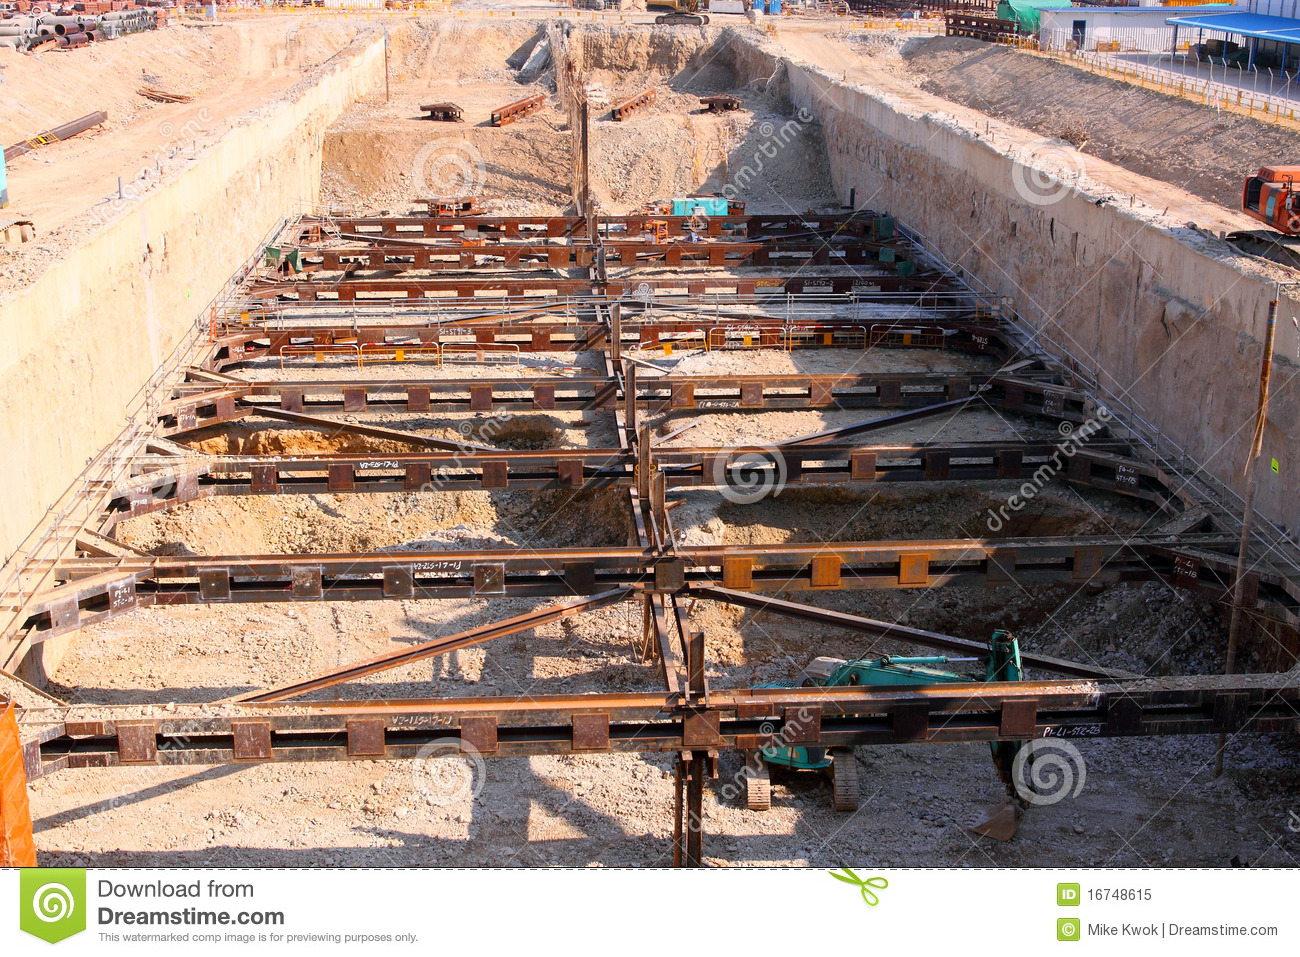 Royalty Free Stock Photo: Construction Sites: dreamstime.com/royalty-free-stock-photo-construction-sites...